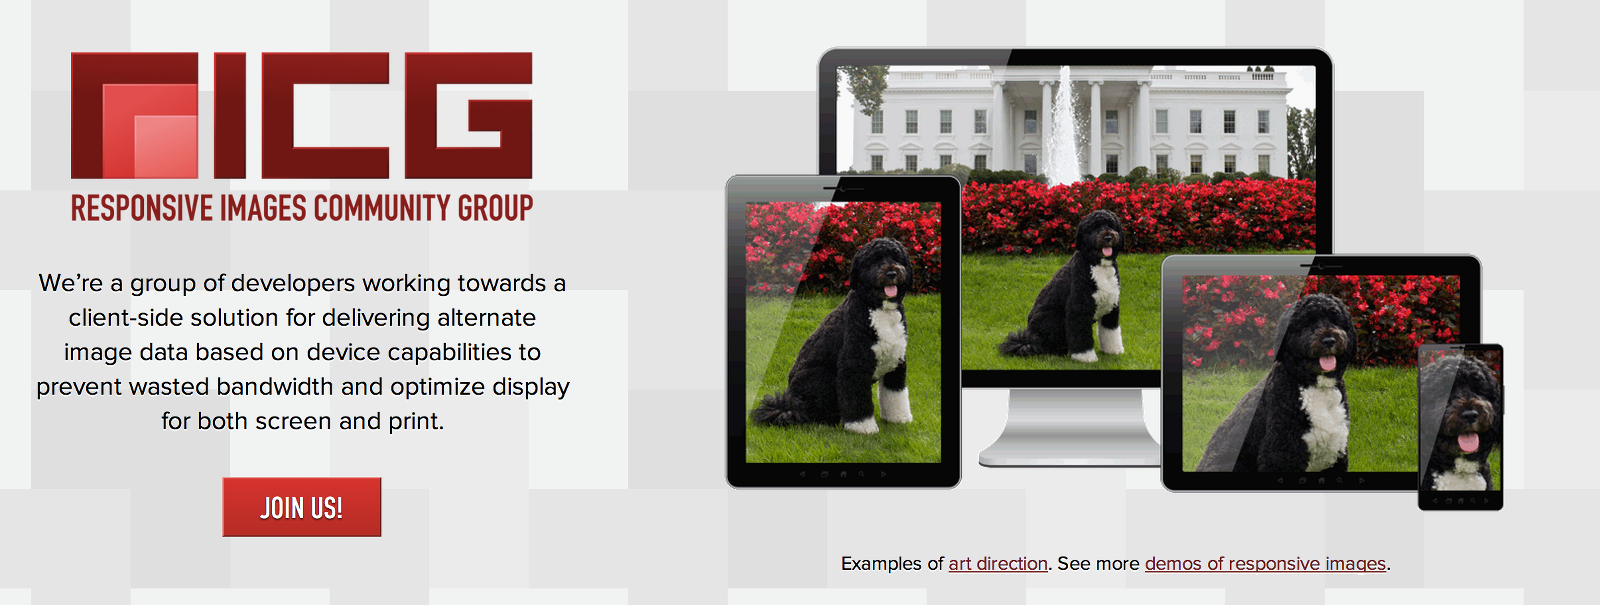 The Responsive Images Community Group website.